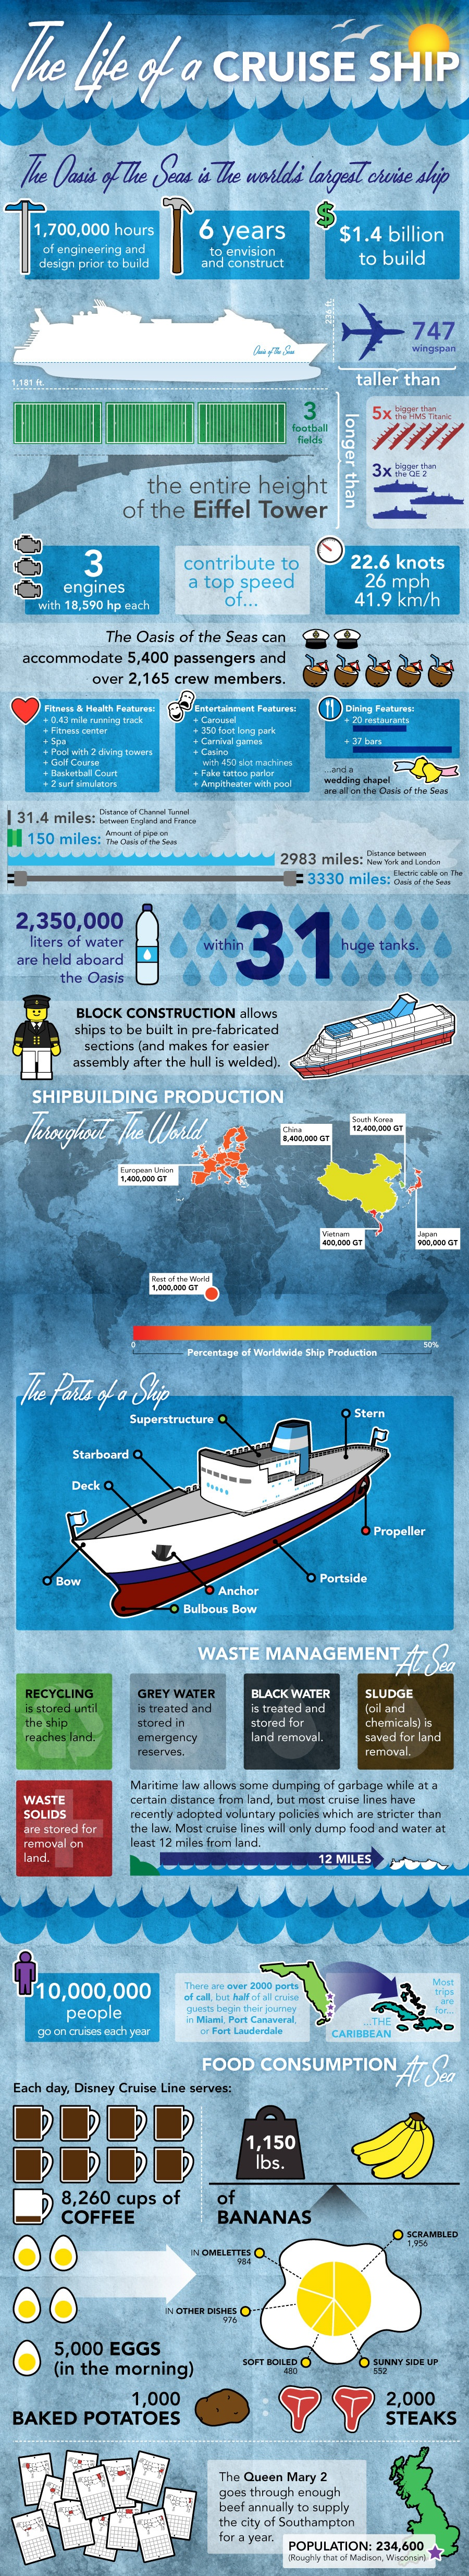 how-big-are-cruise-ships